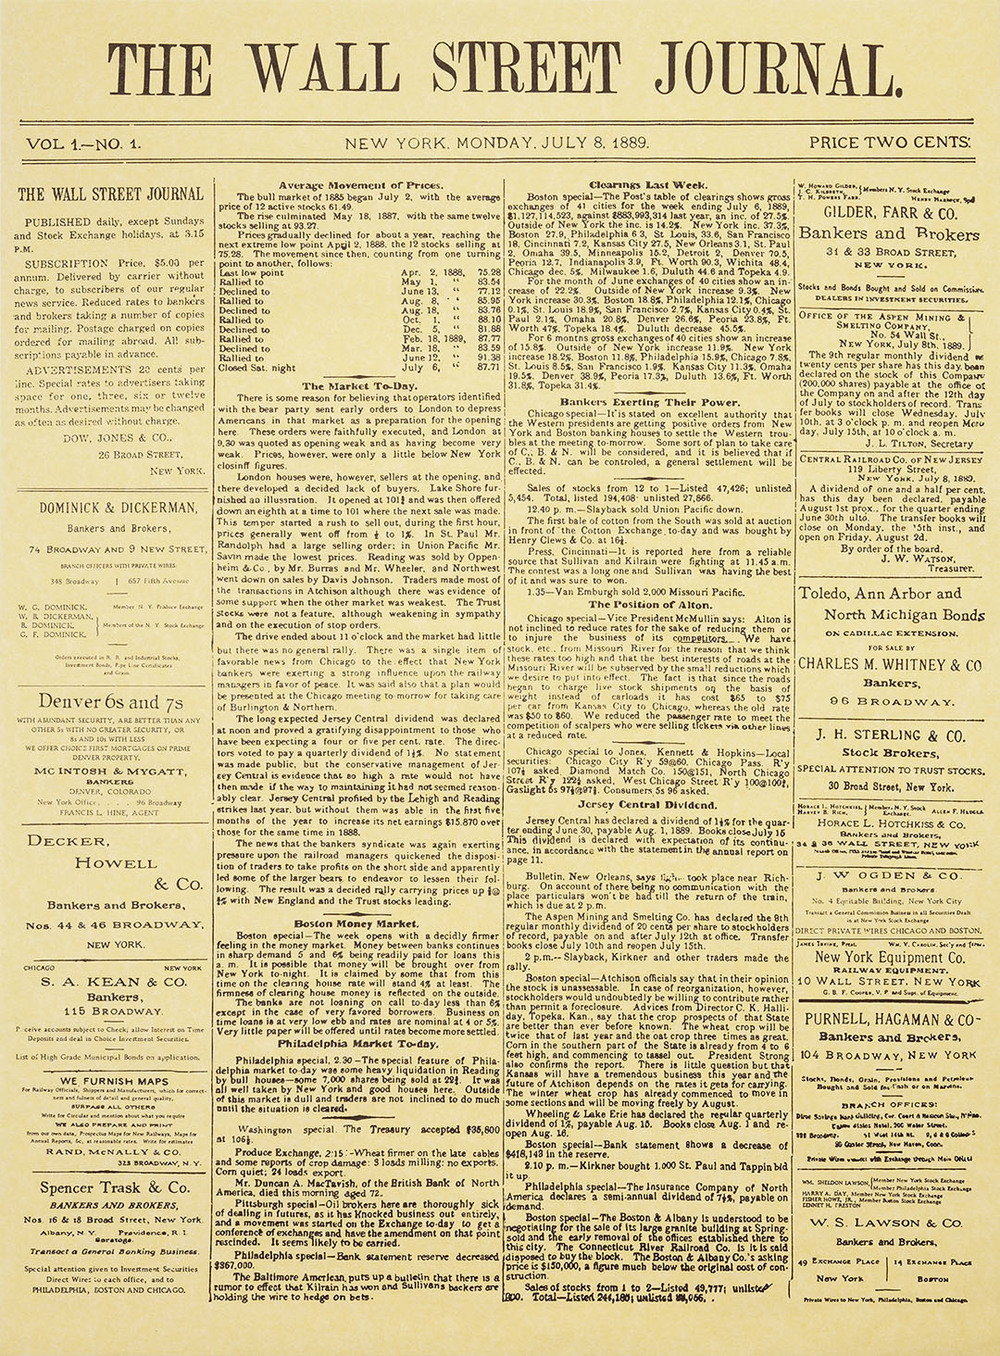 The Wall Street Journal - first edition, New York, Monday, July 8, 1889.  Click here to see the first edition in details .